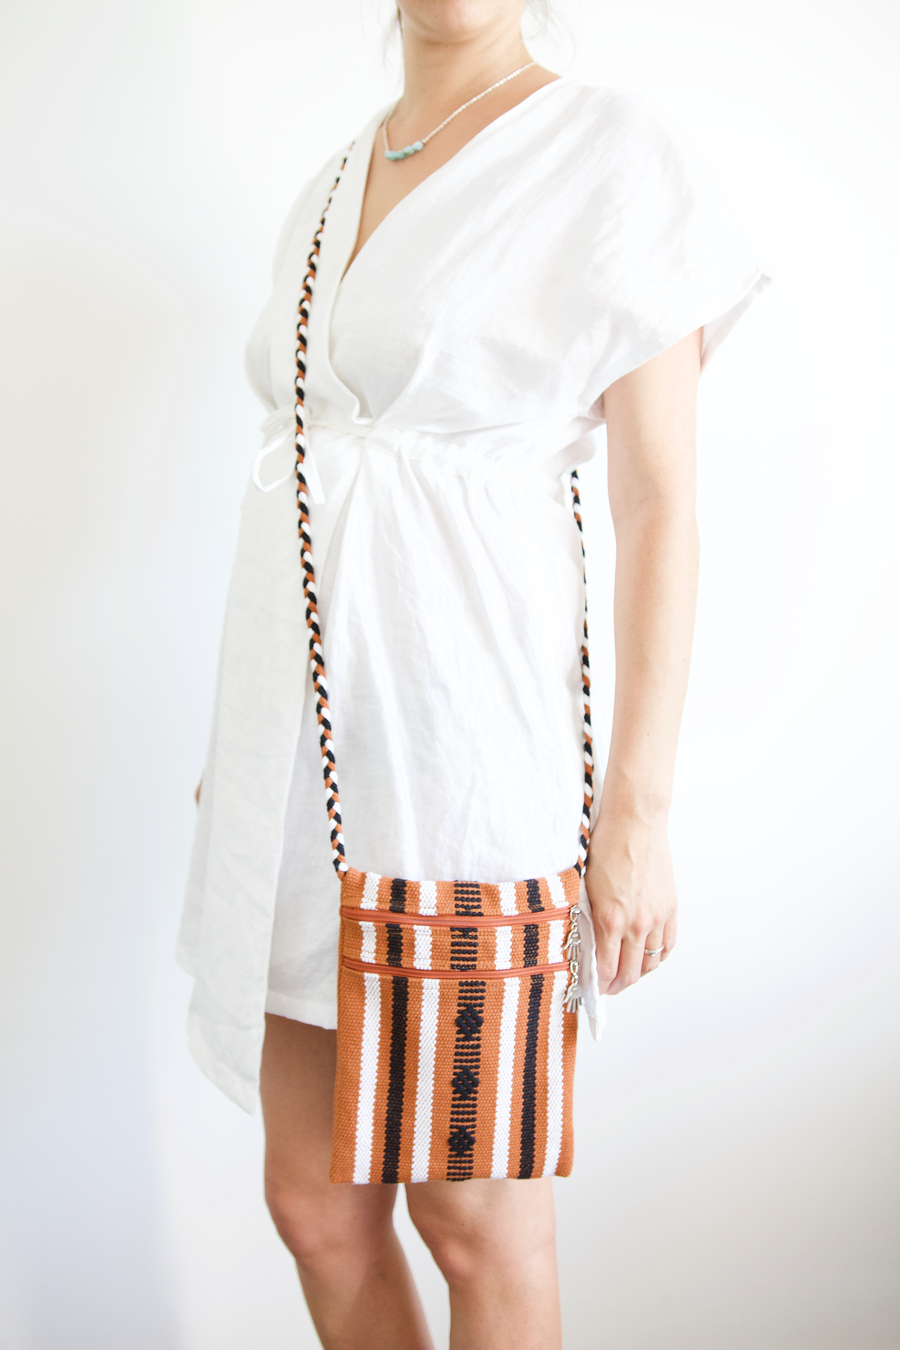 Santo Bag - Terracotta Stripe - Large